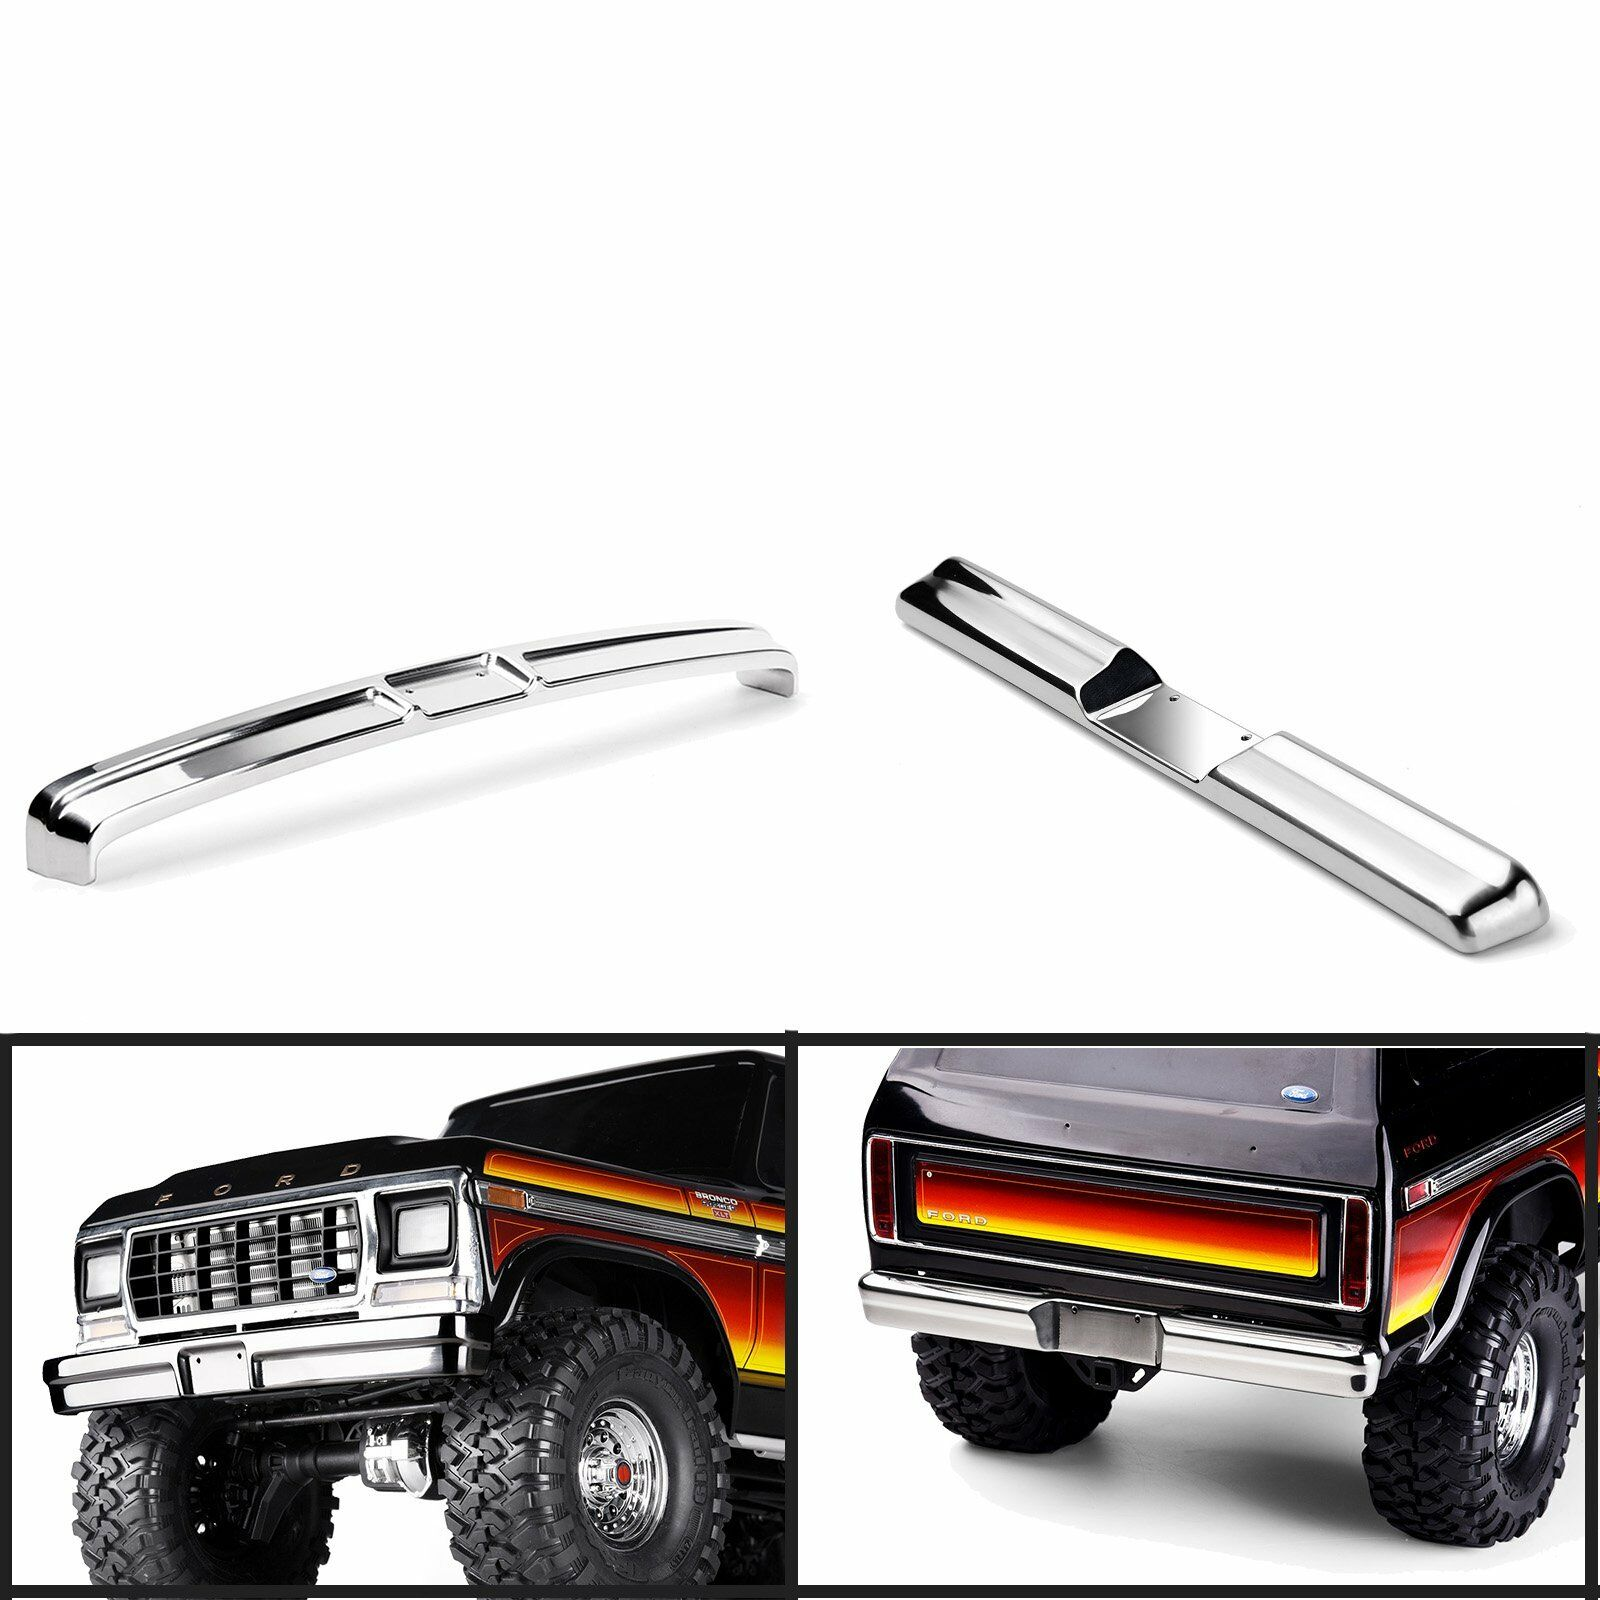 Stainless Steel Predection Front & Rear Bumper for TRAXXAS TRX-4 Bronco